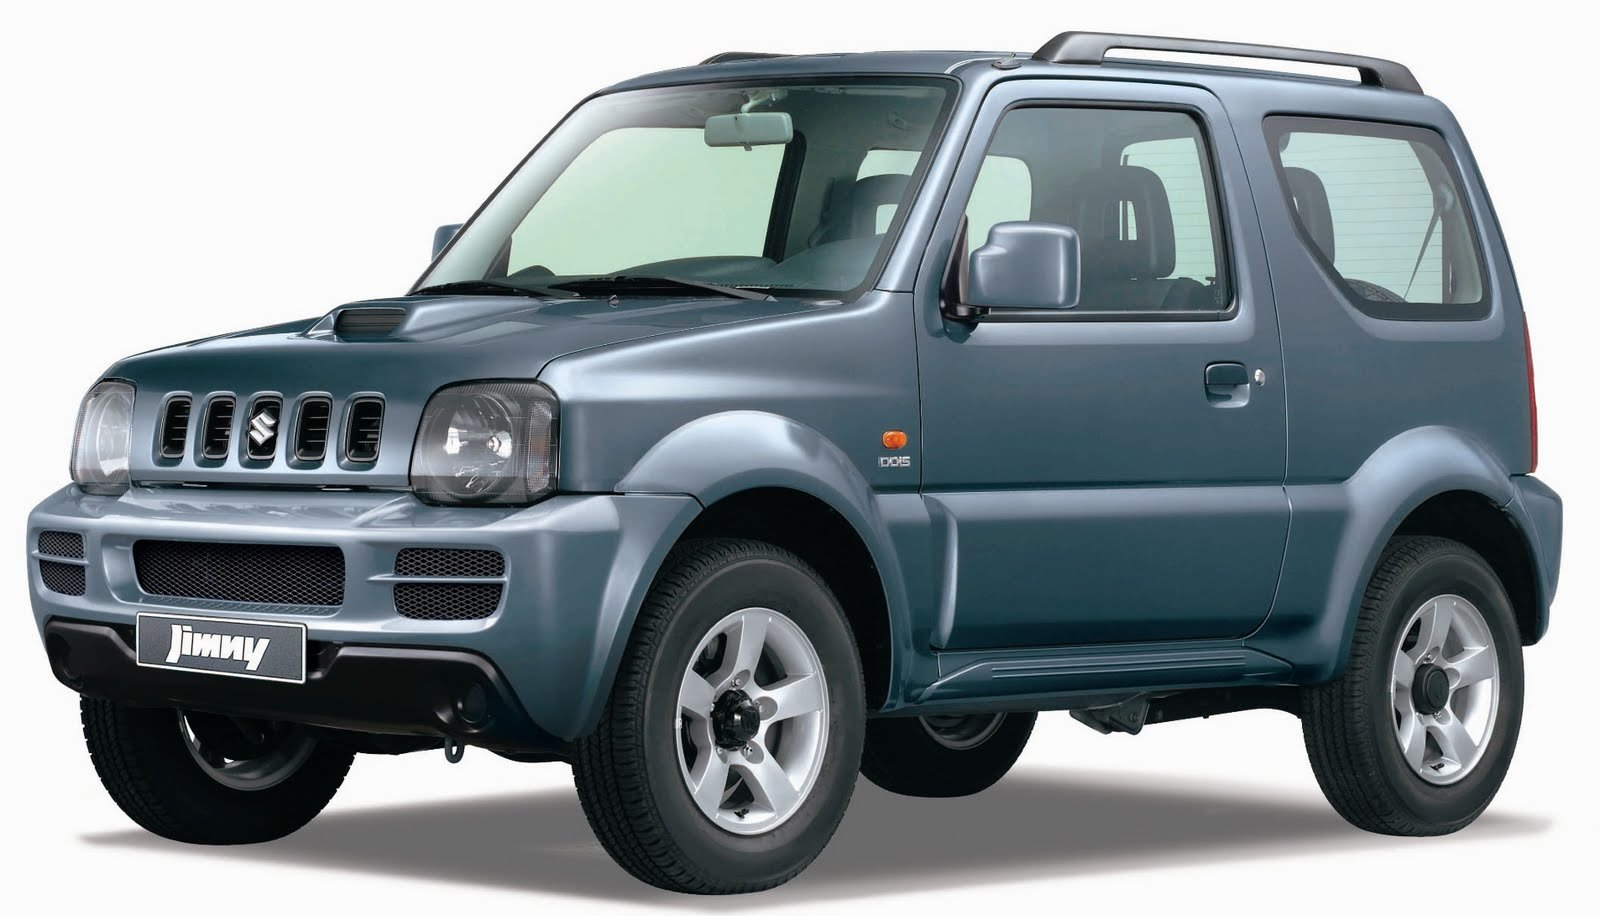 Latest Maruti Suzuki Jimny Wallpaper Free Download